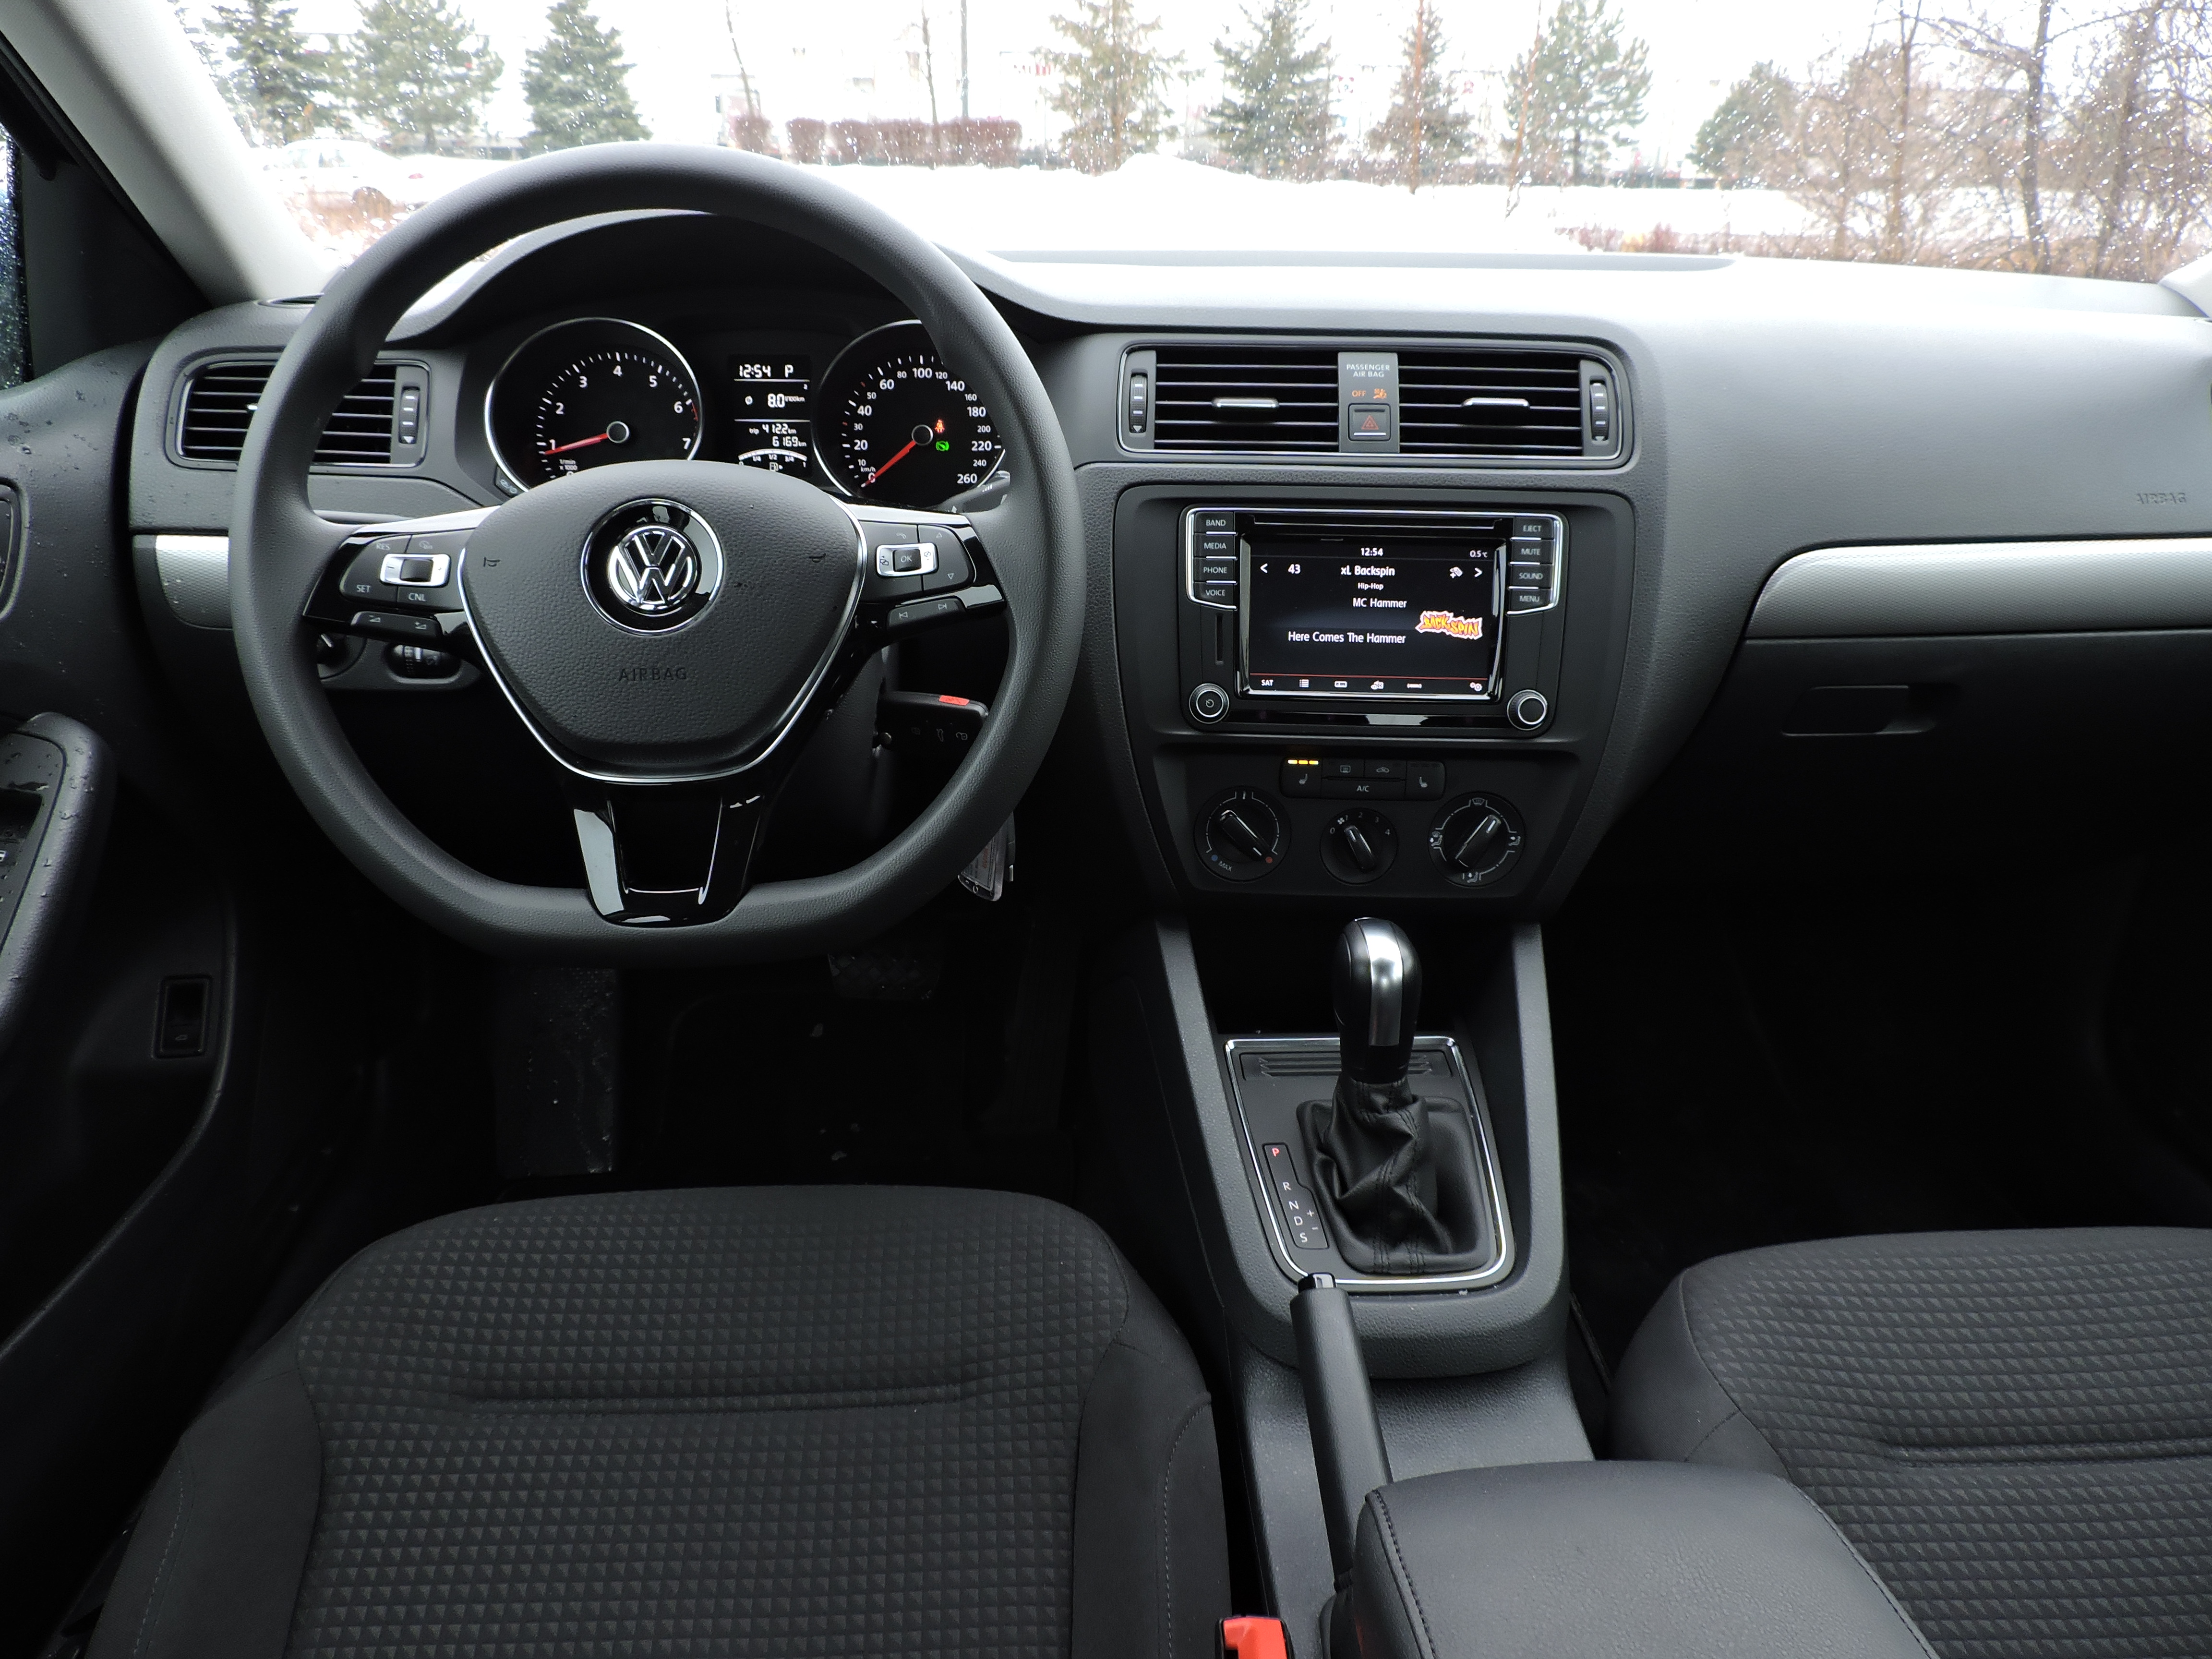 winnipeg leather in jetta gli full navi volkswagen listings heated mb seats